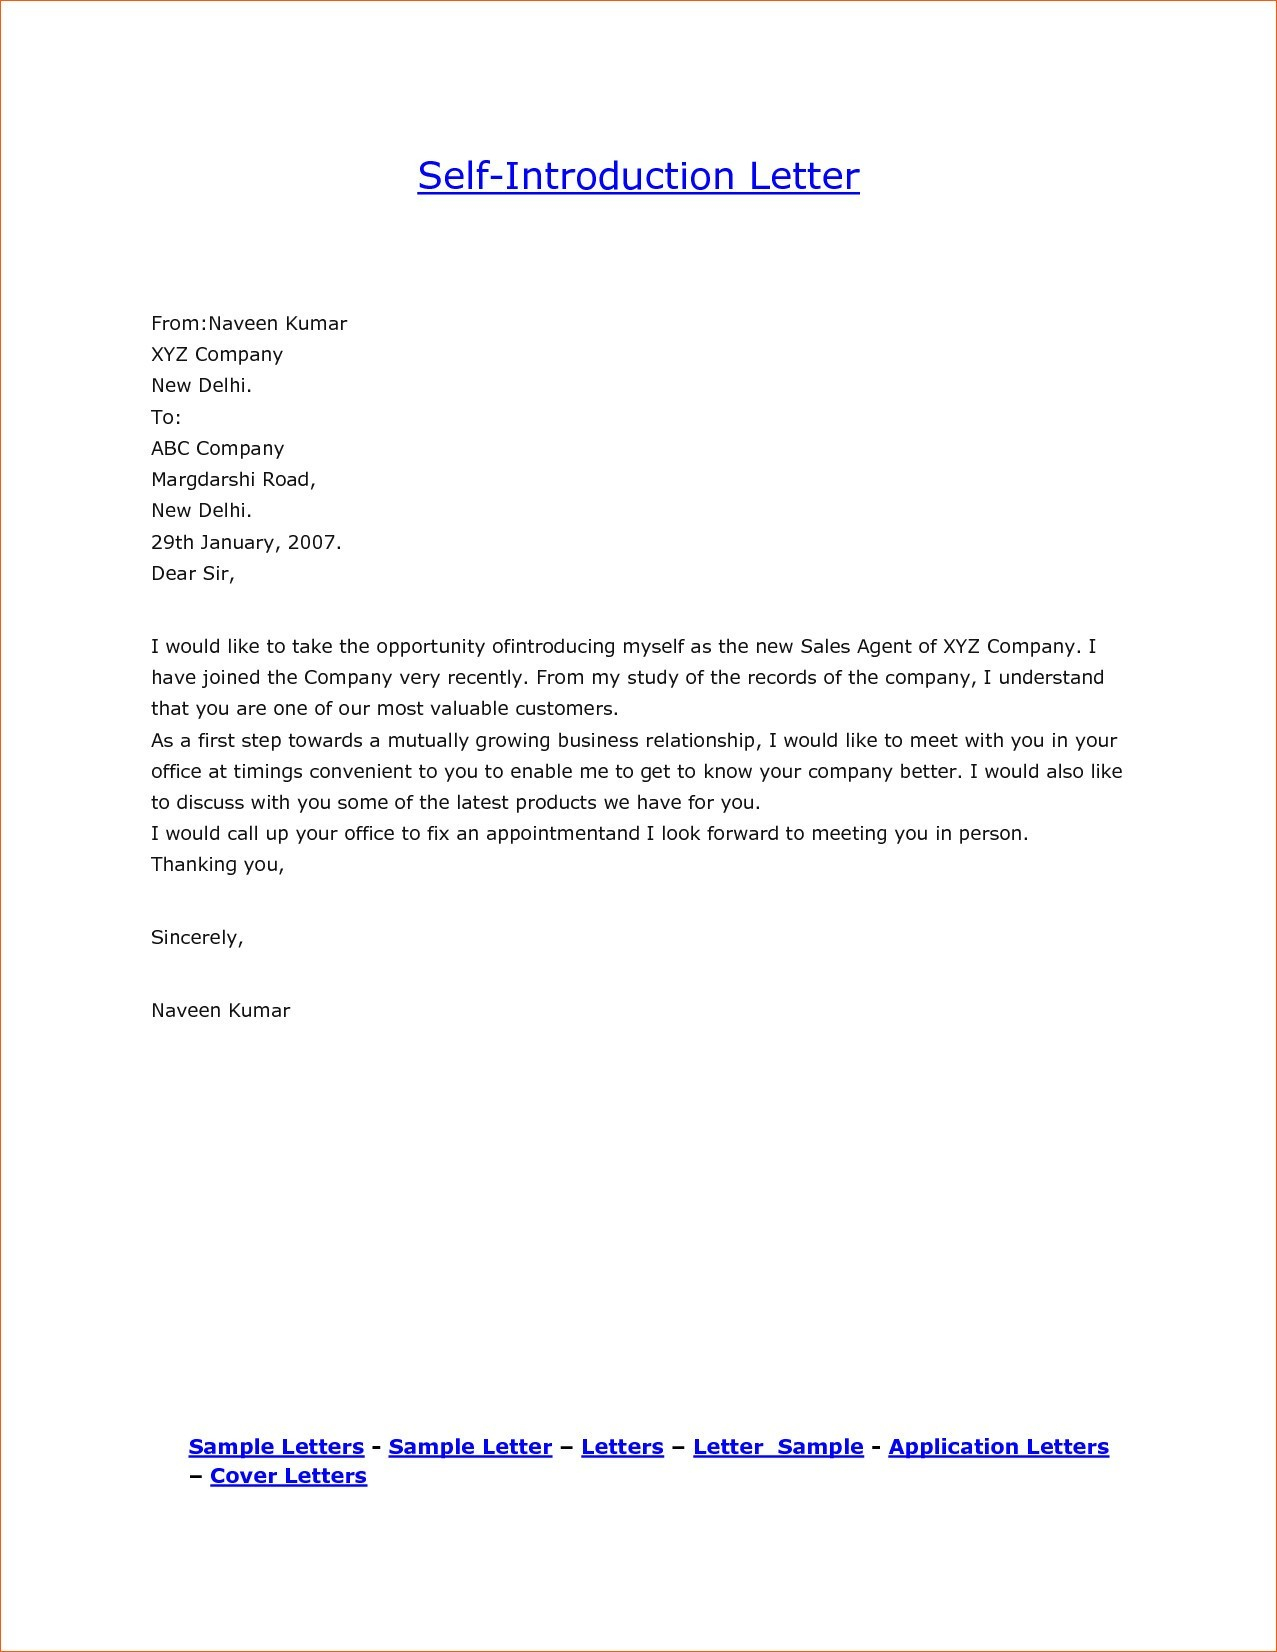 cleaning business introduction letter template Collection-Introduction Letter format for Trading pany New Samples Business Introduction Letters Save Cleaning Business 6-h